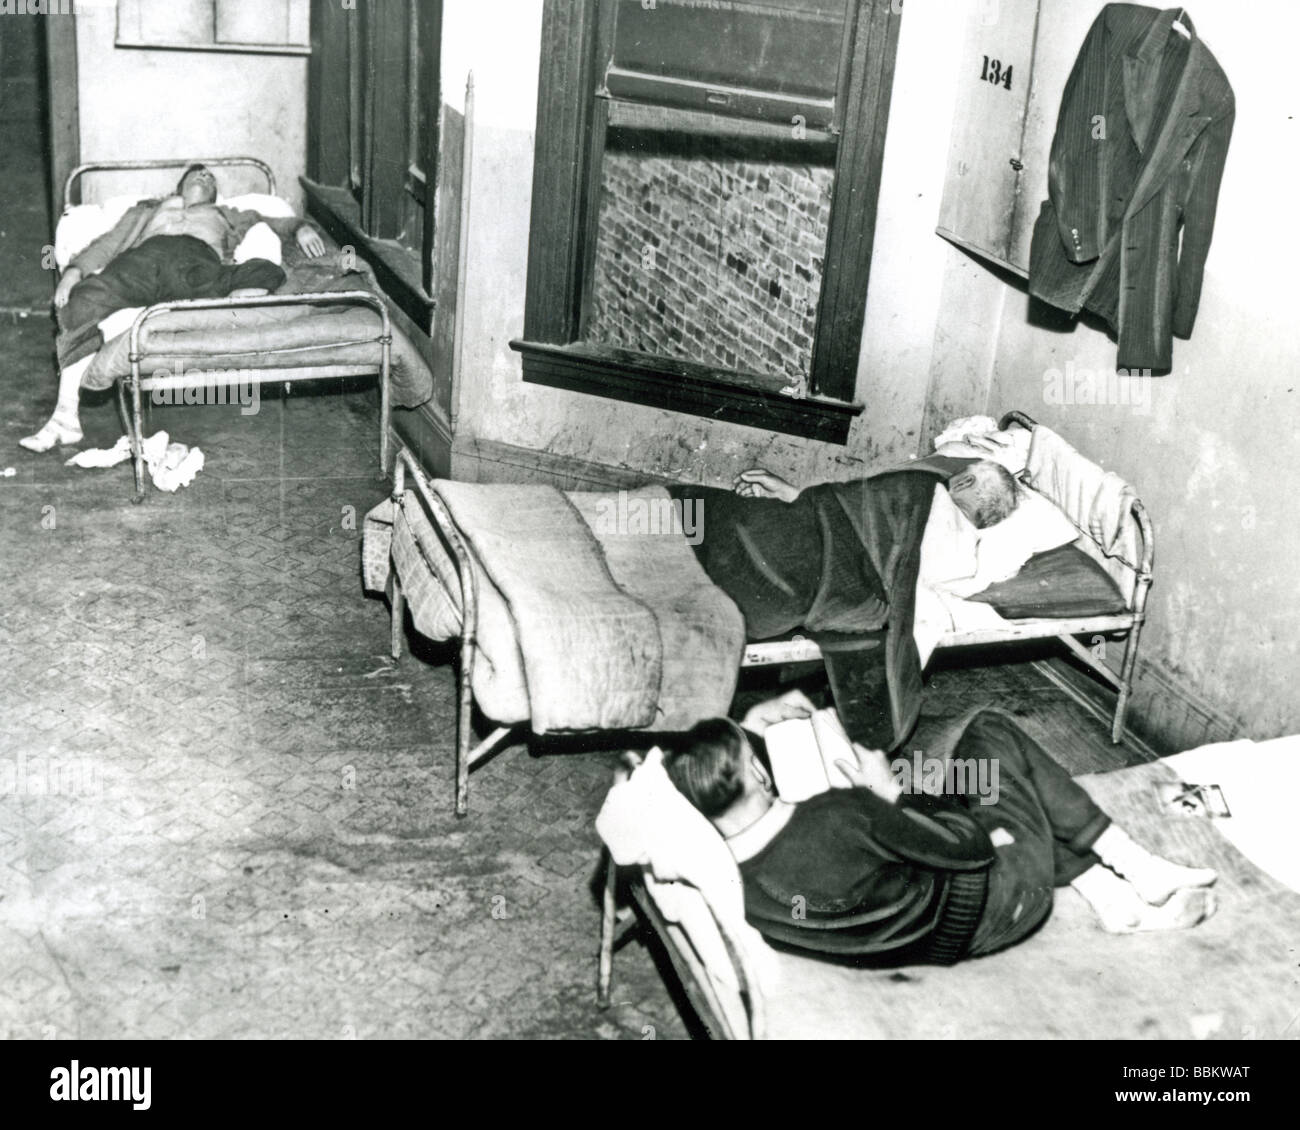 research paper on the great depression tough times tough people  great depression s stock photos great depression s stock chicago flophouse during the great depression of